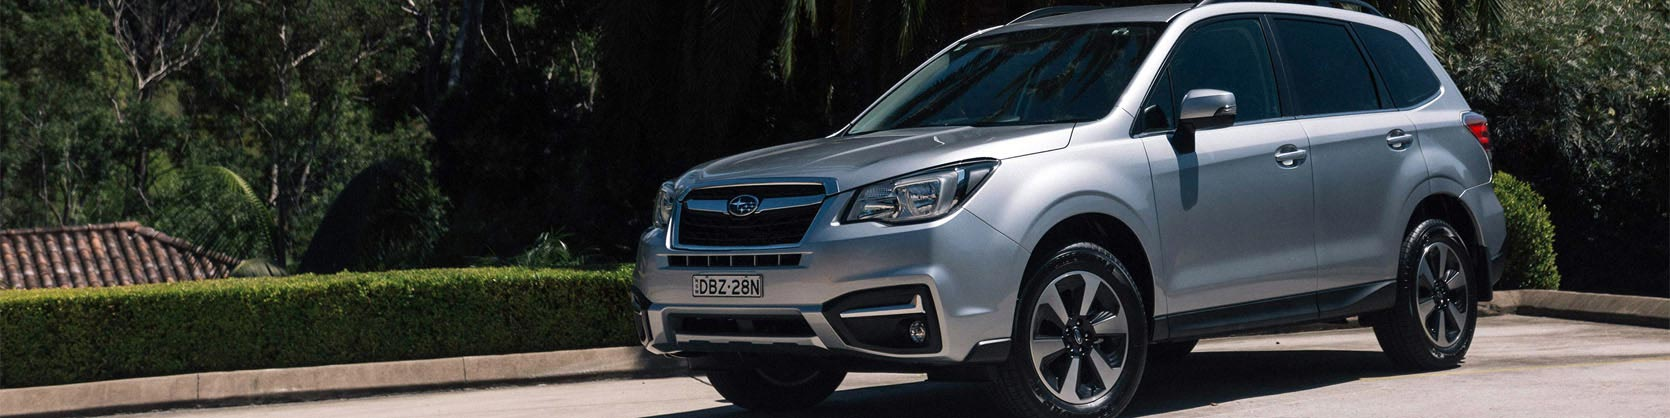 new subaru forester for sale high country subaru. Black Bedroom Furniture Sets. Home Design Ideas